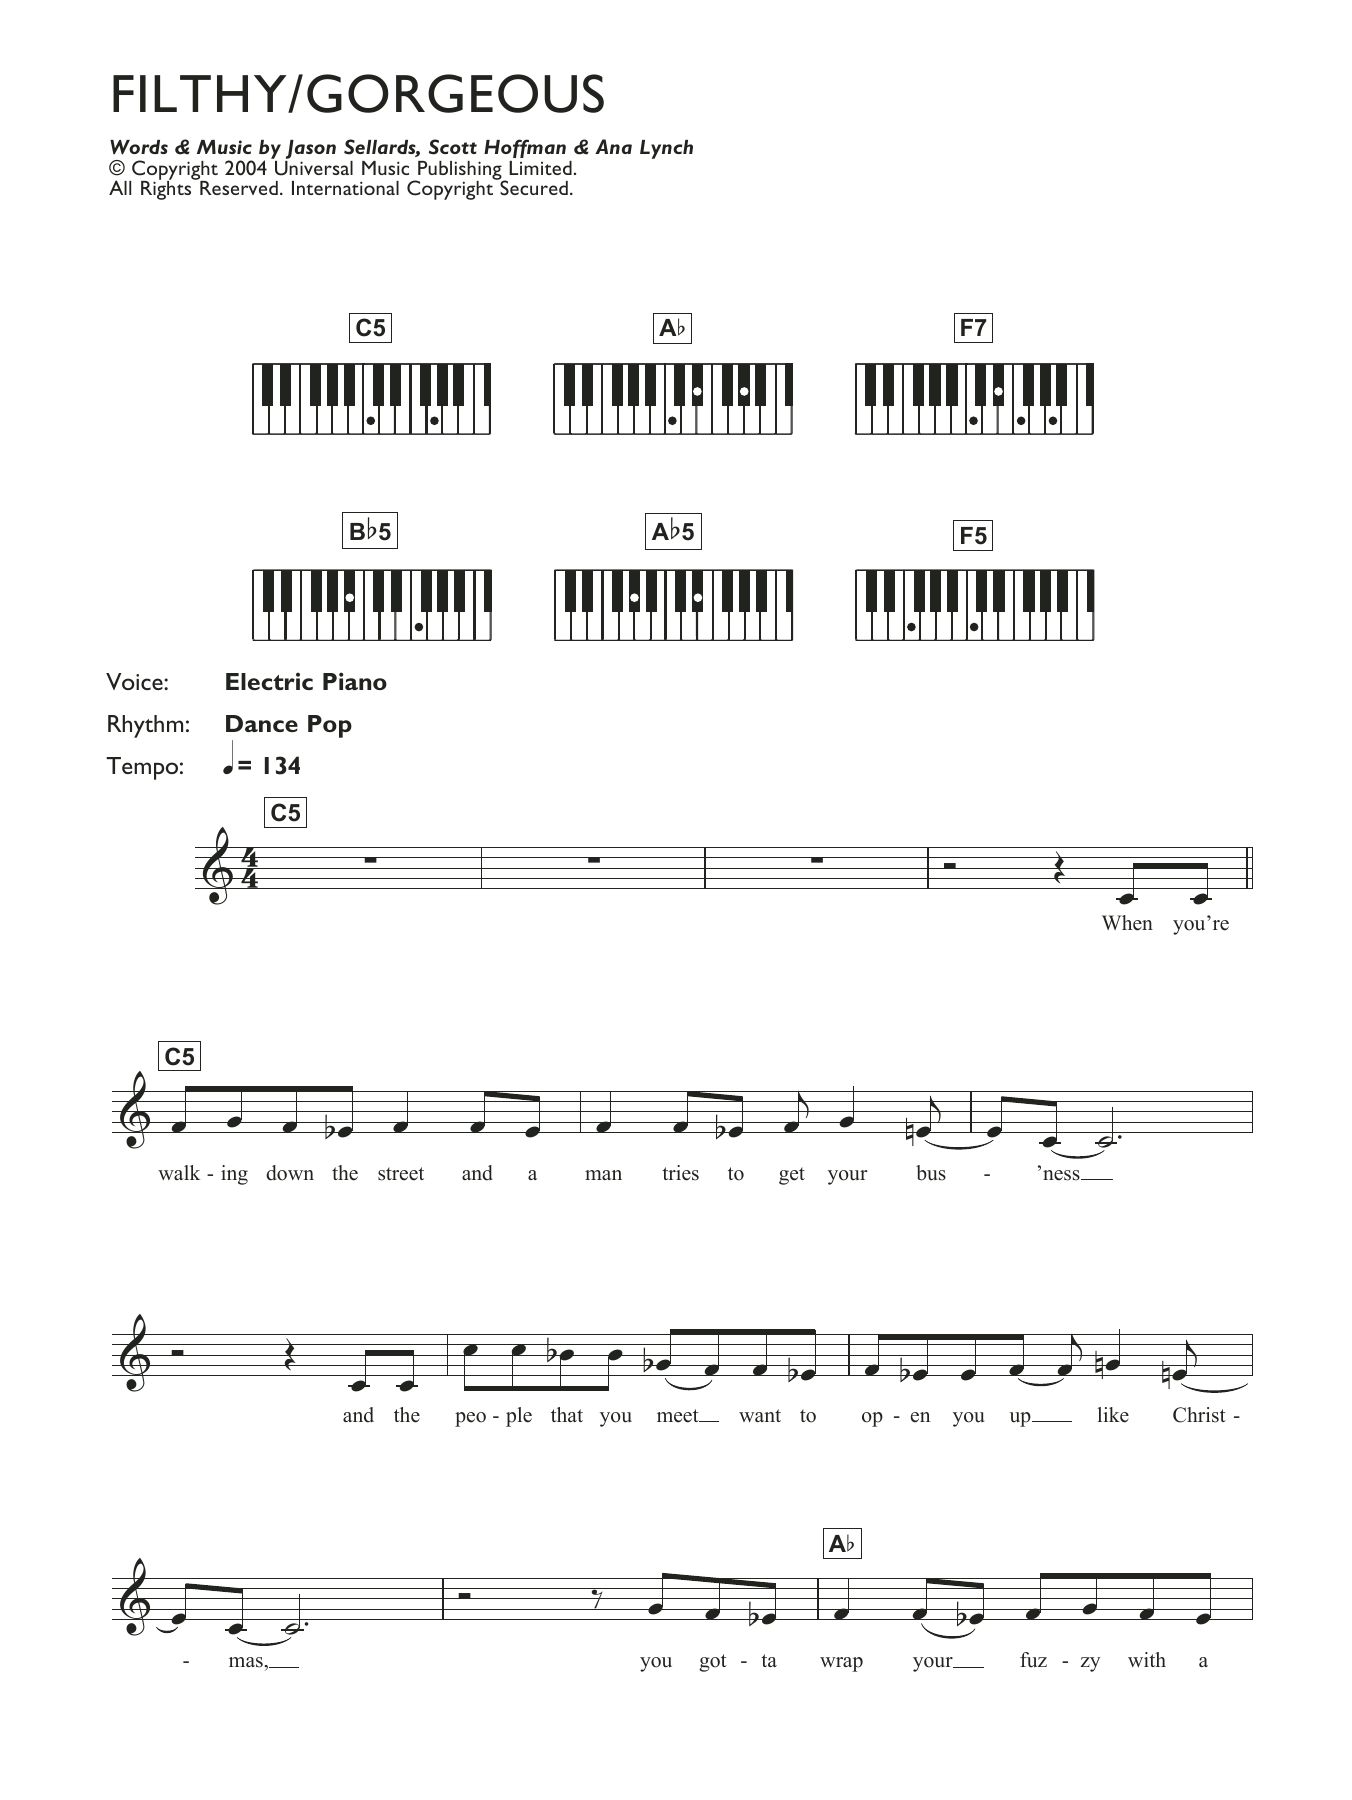 Filthy/Gorgeous Sheet Music